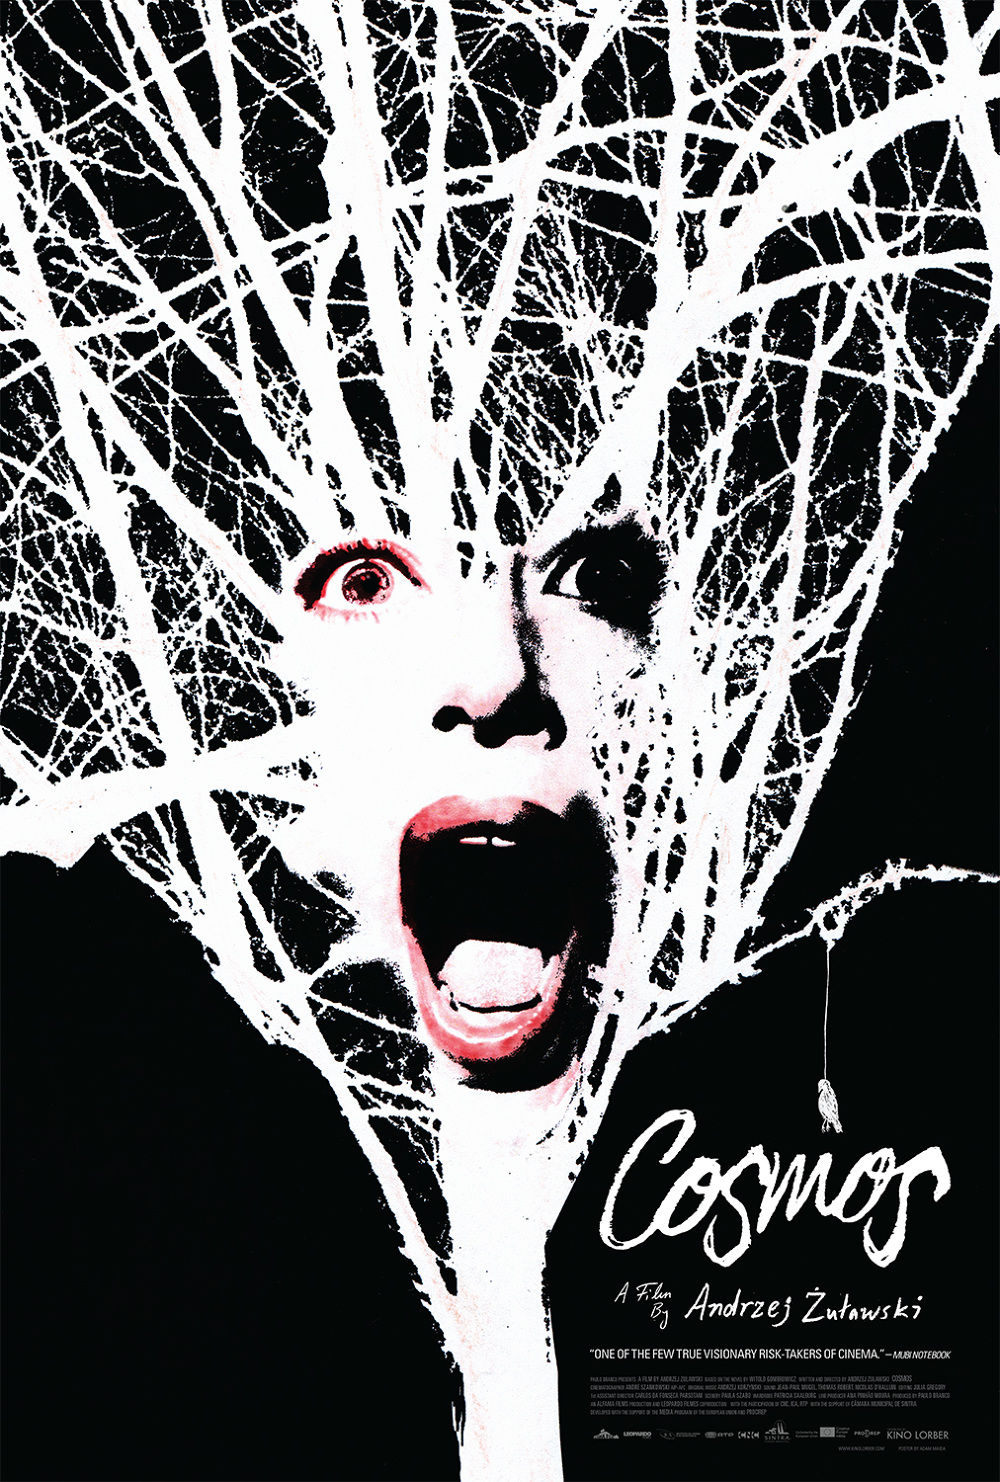 Cosmos film poster, featuring artwork by Adam Maida. The black-and-white artwork is reminiscent of Maida's photomontages for the New York Times